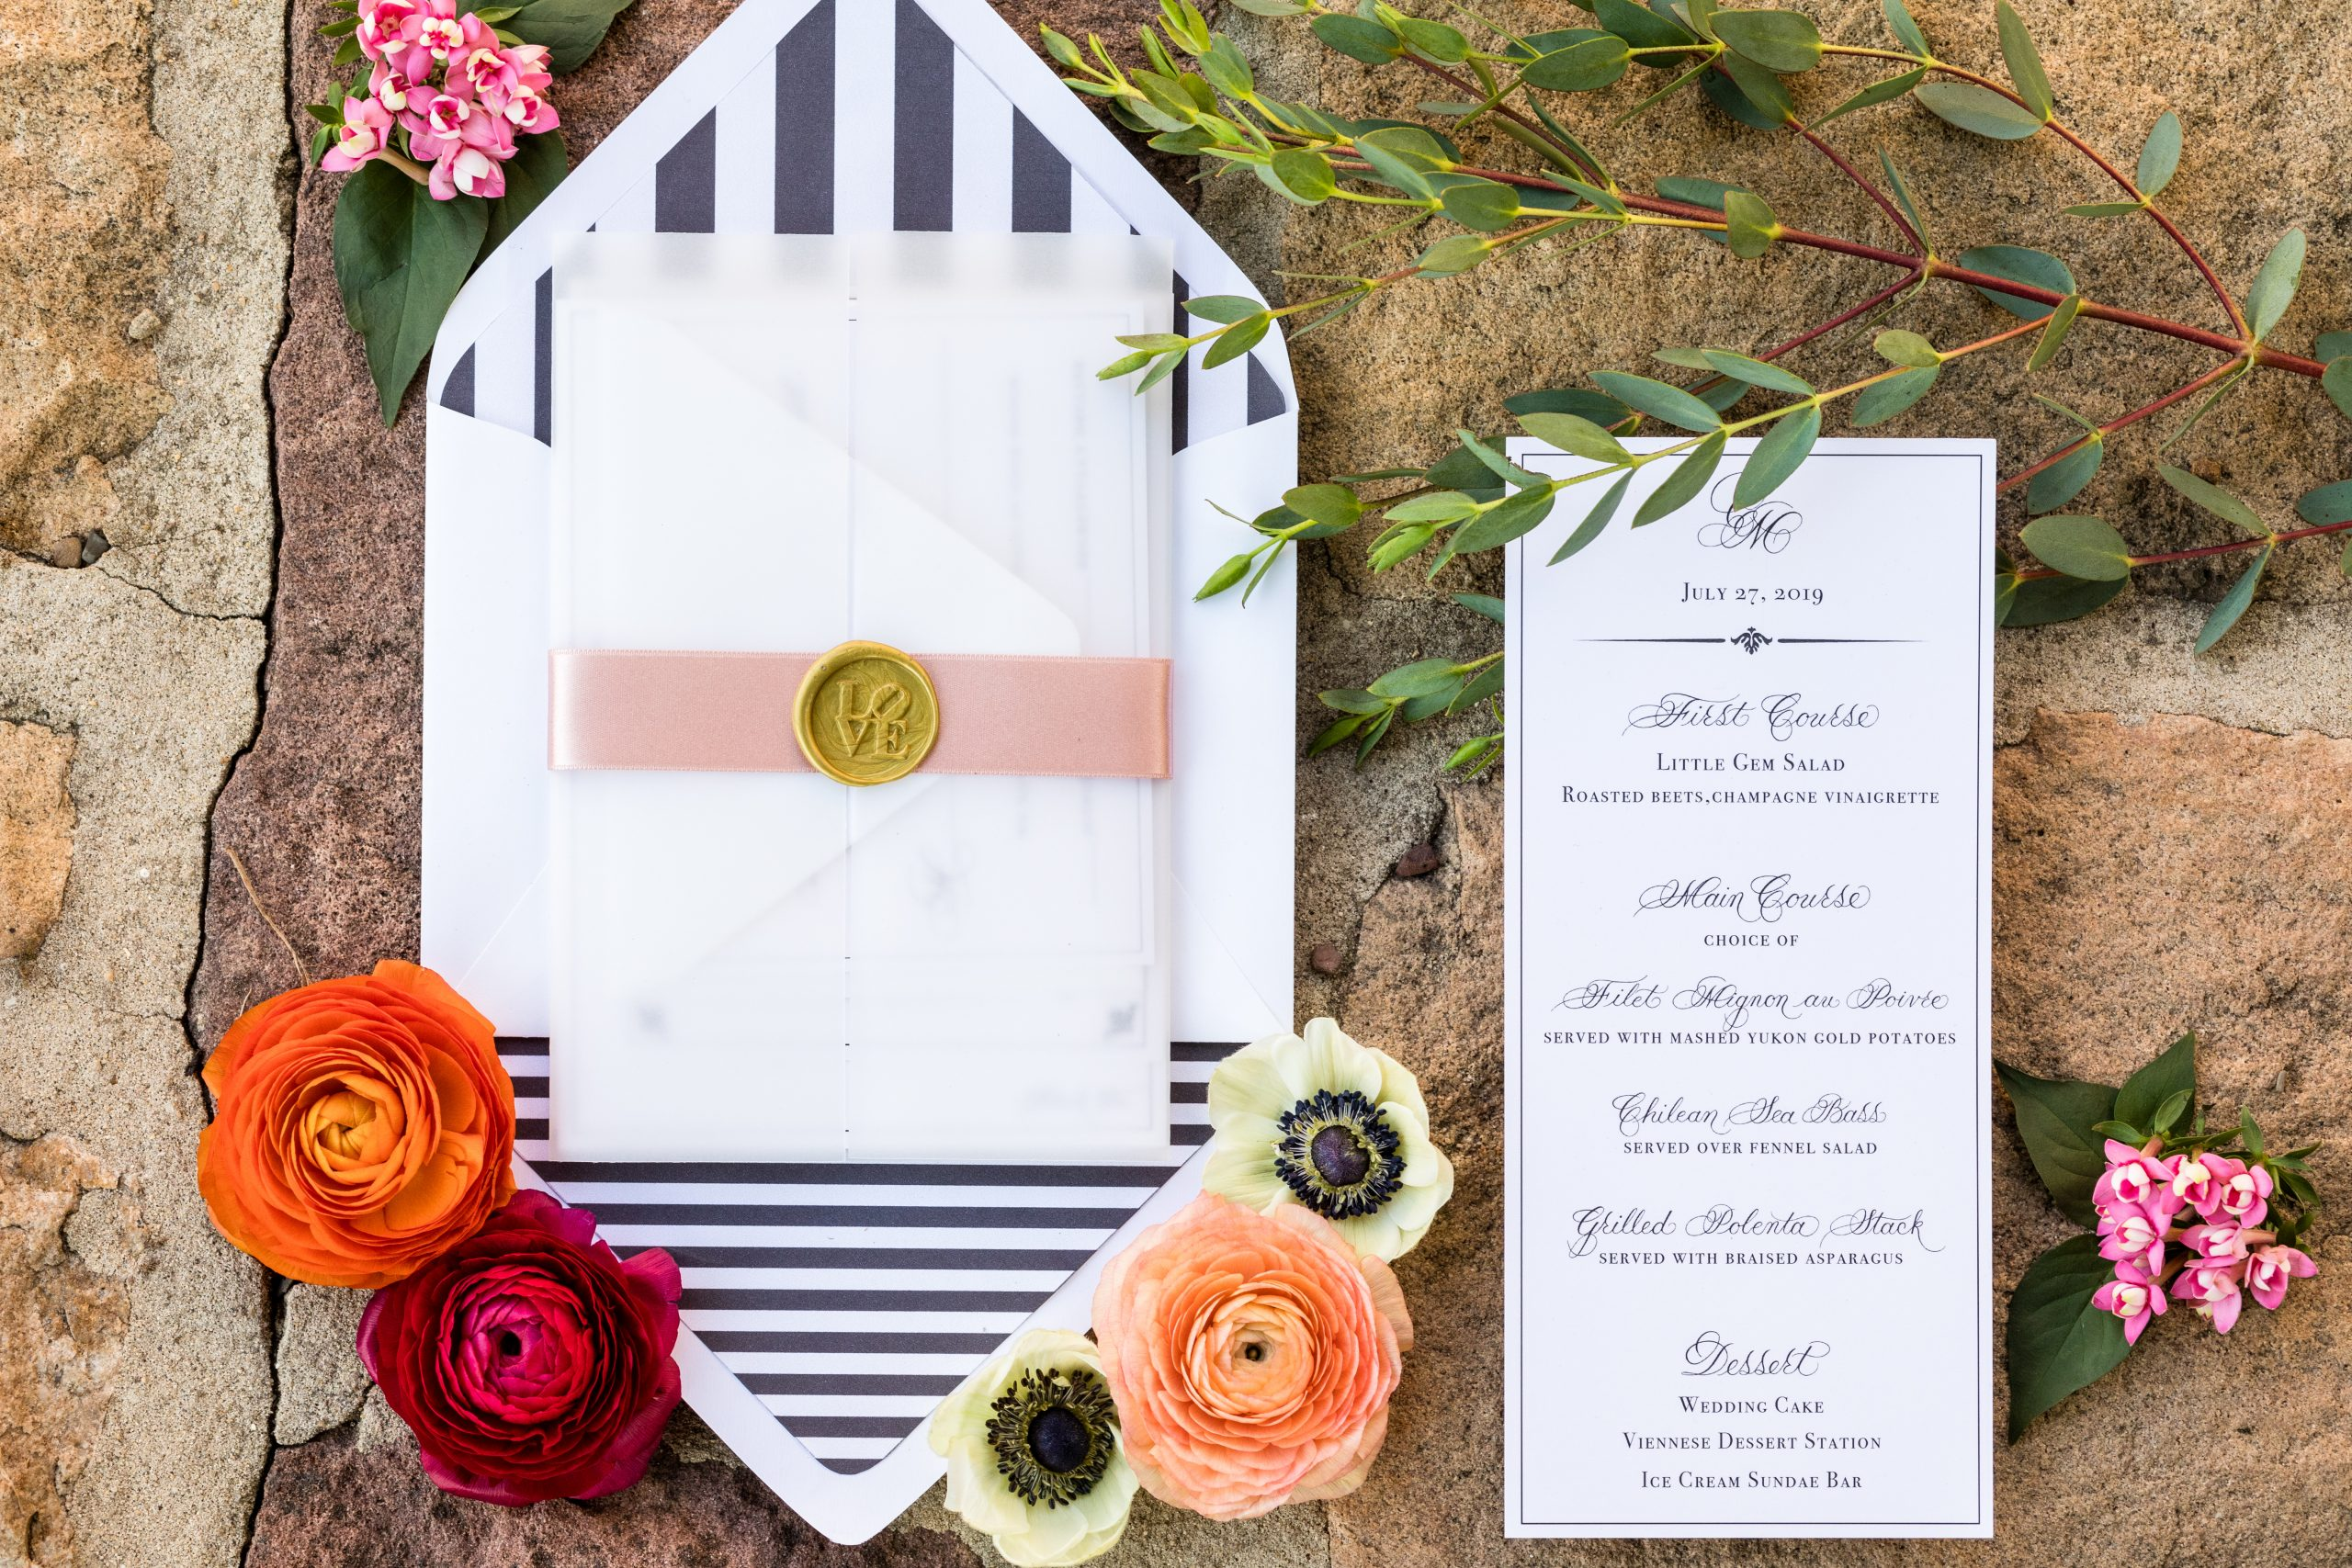 Invition envelopes as well as dinner choices garnished with orange, red, pink and white flowers at the Michener Museum styled urban contemporary shoot for Ashley Gerrity Photography this past Summer. Featured on Dream Weddings.